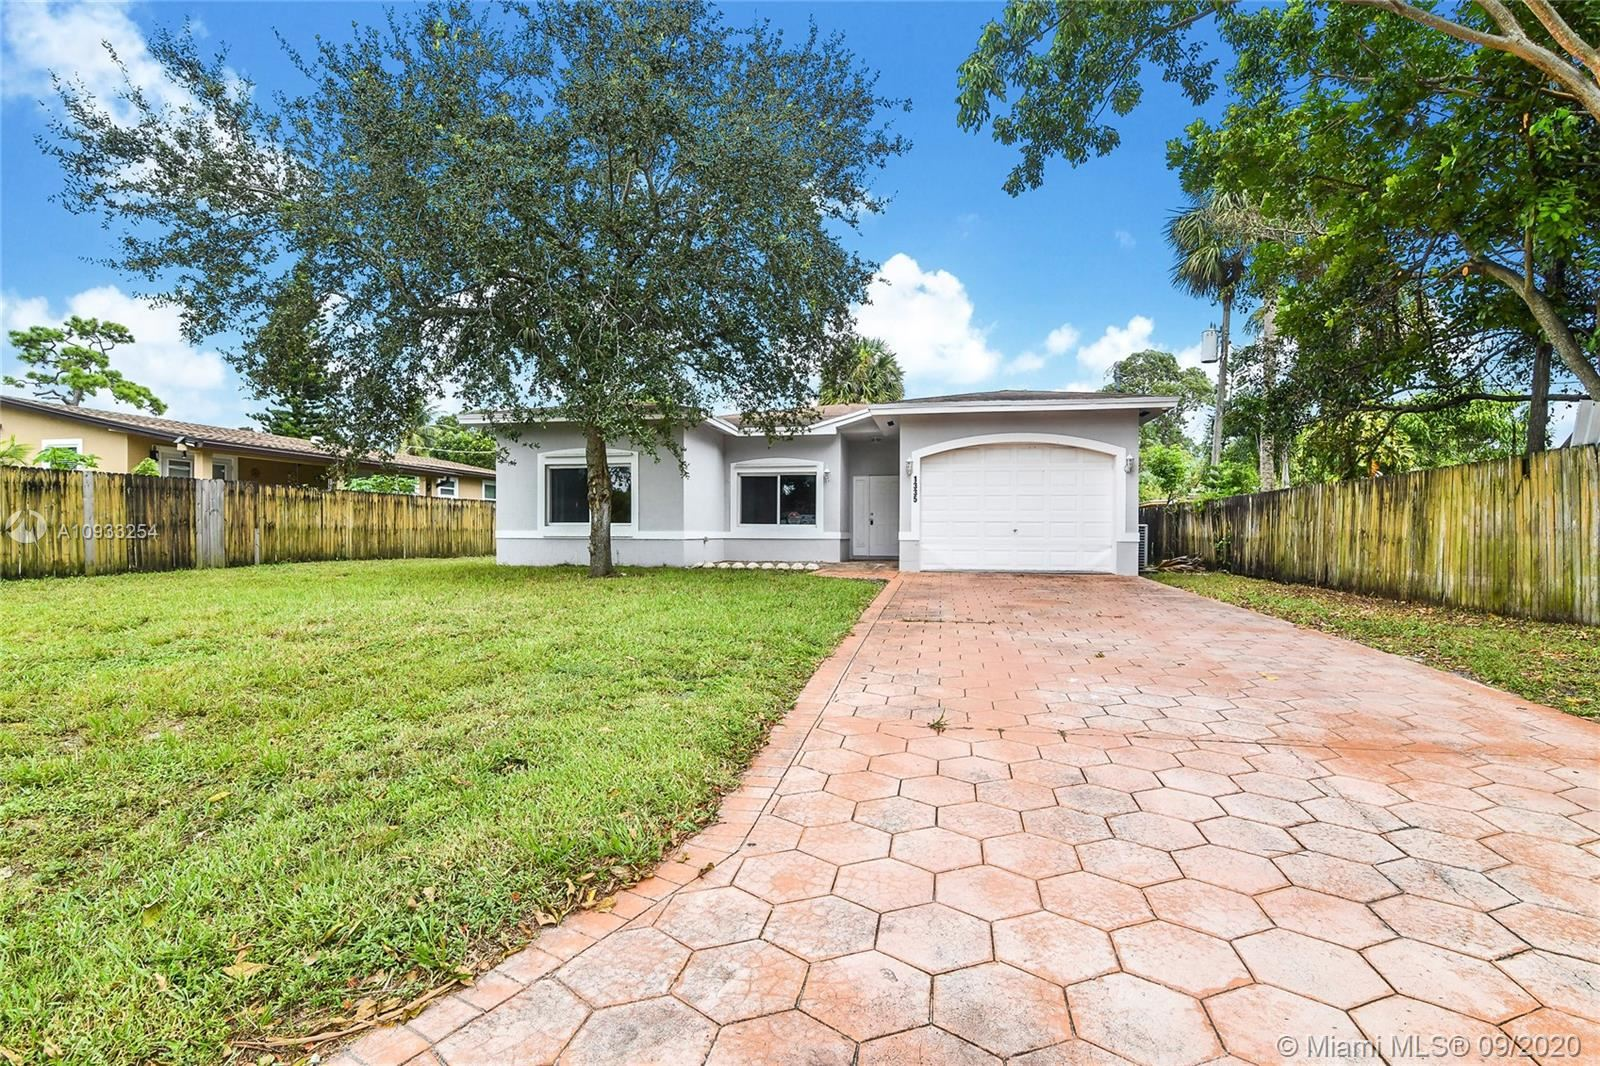 1335 SW 26th Ave, Fort Lauderdale, FL 33312 - #: A10933254